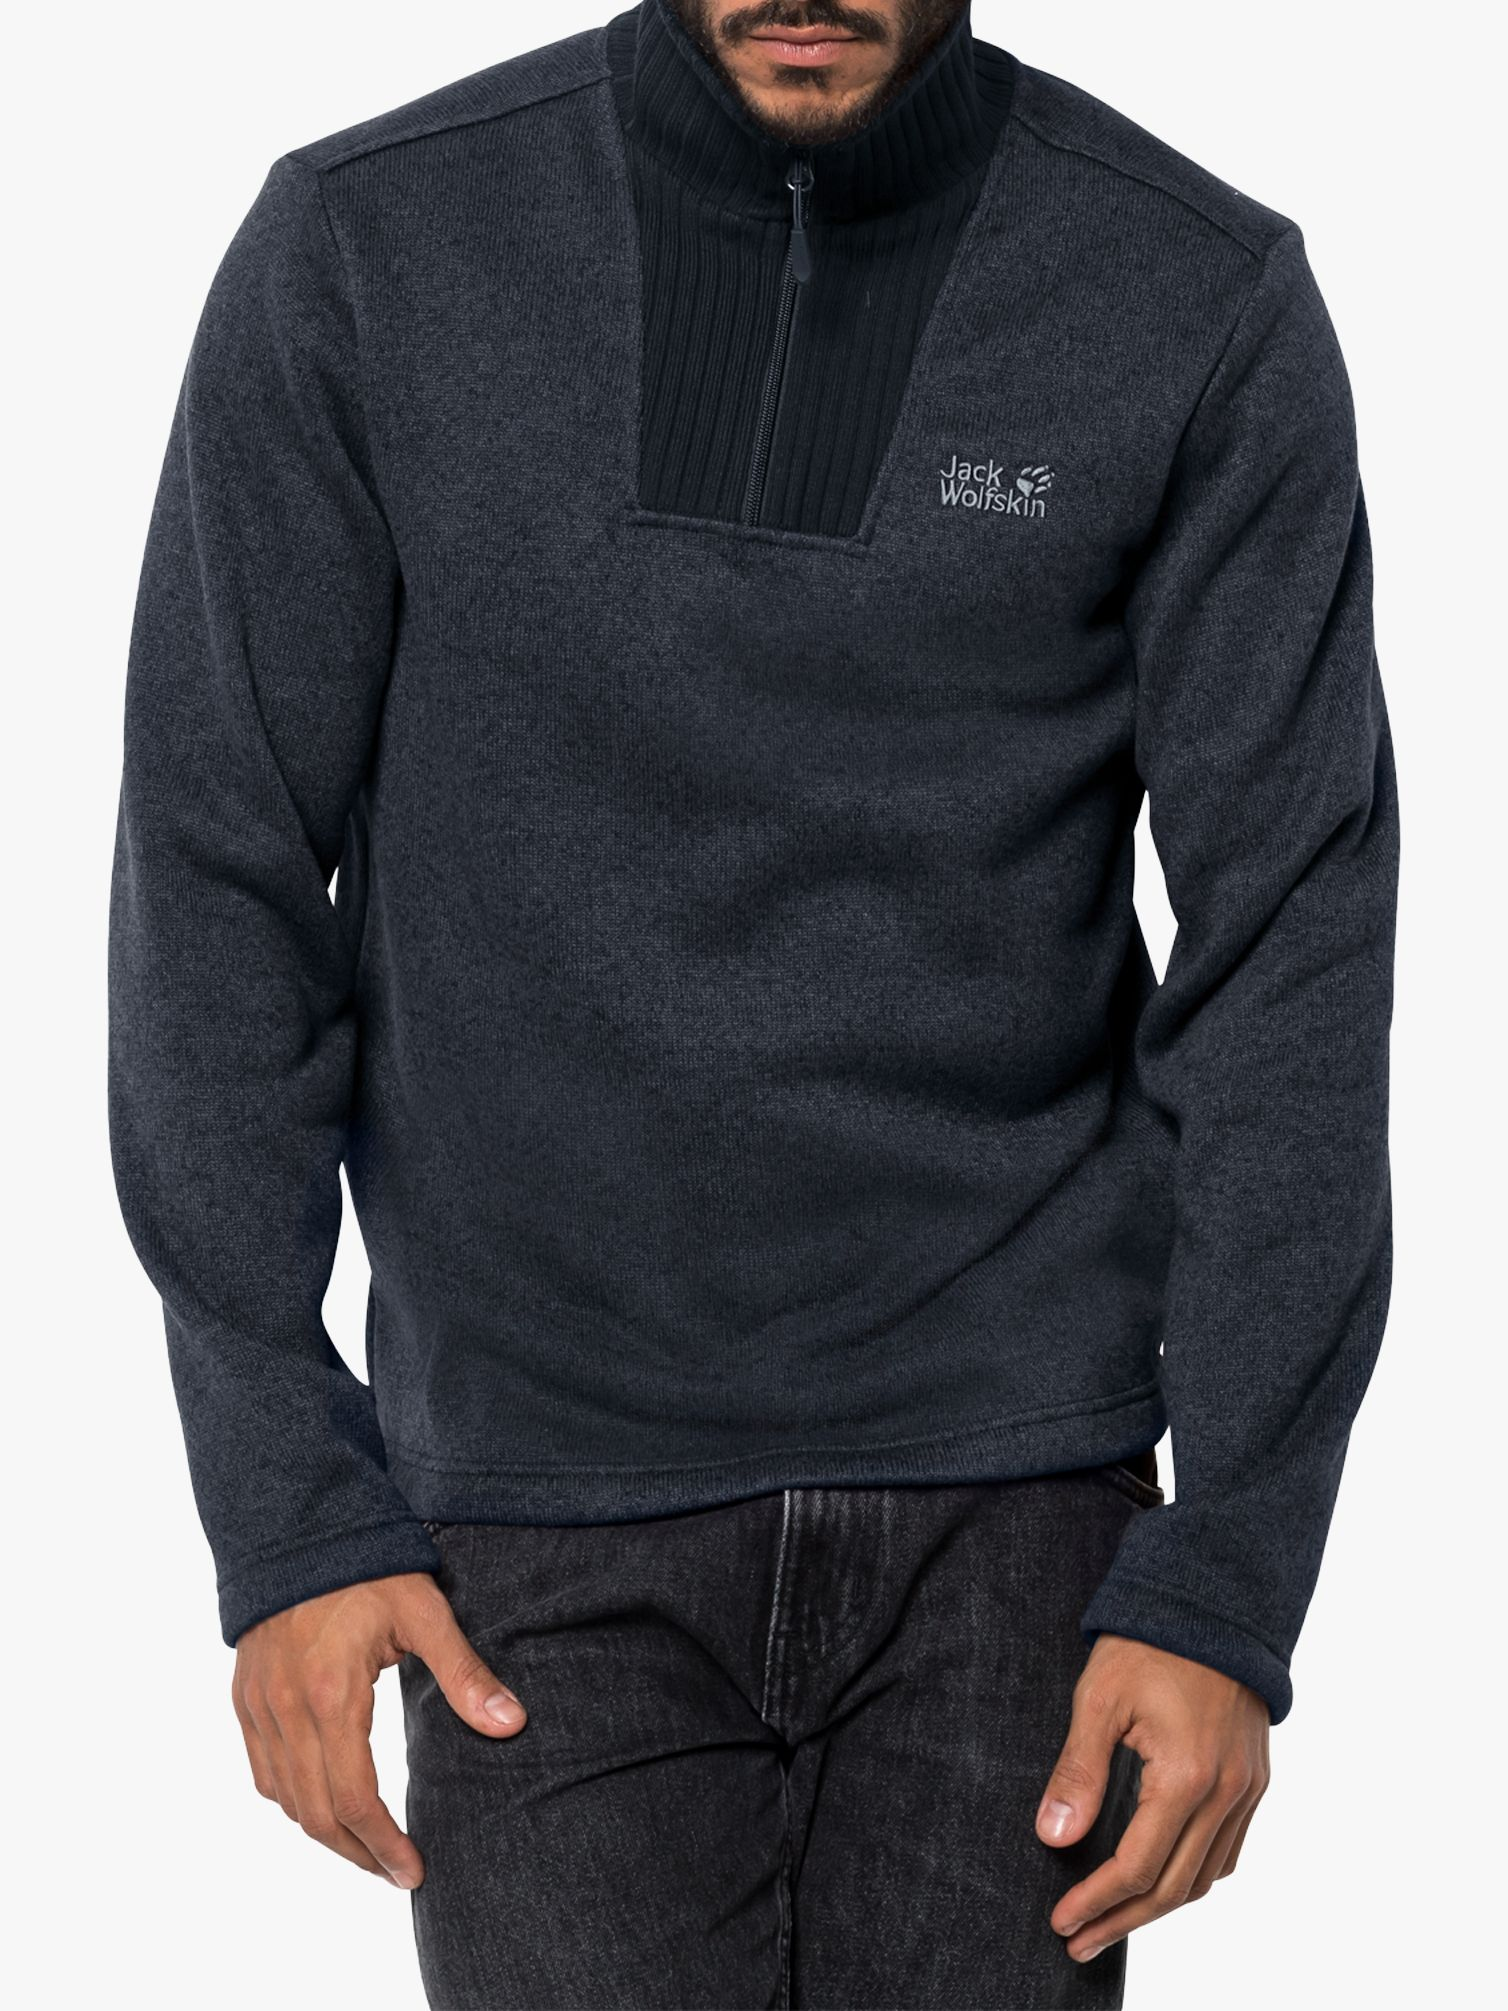 new style 0703f 07142 Jack Wolfskin Scandic Men's Fleece, Night Blue